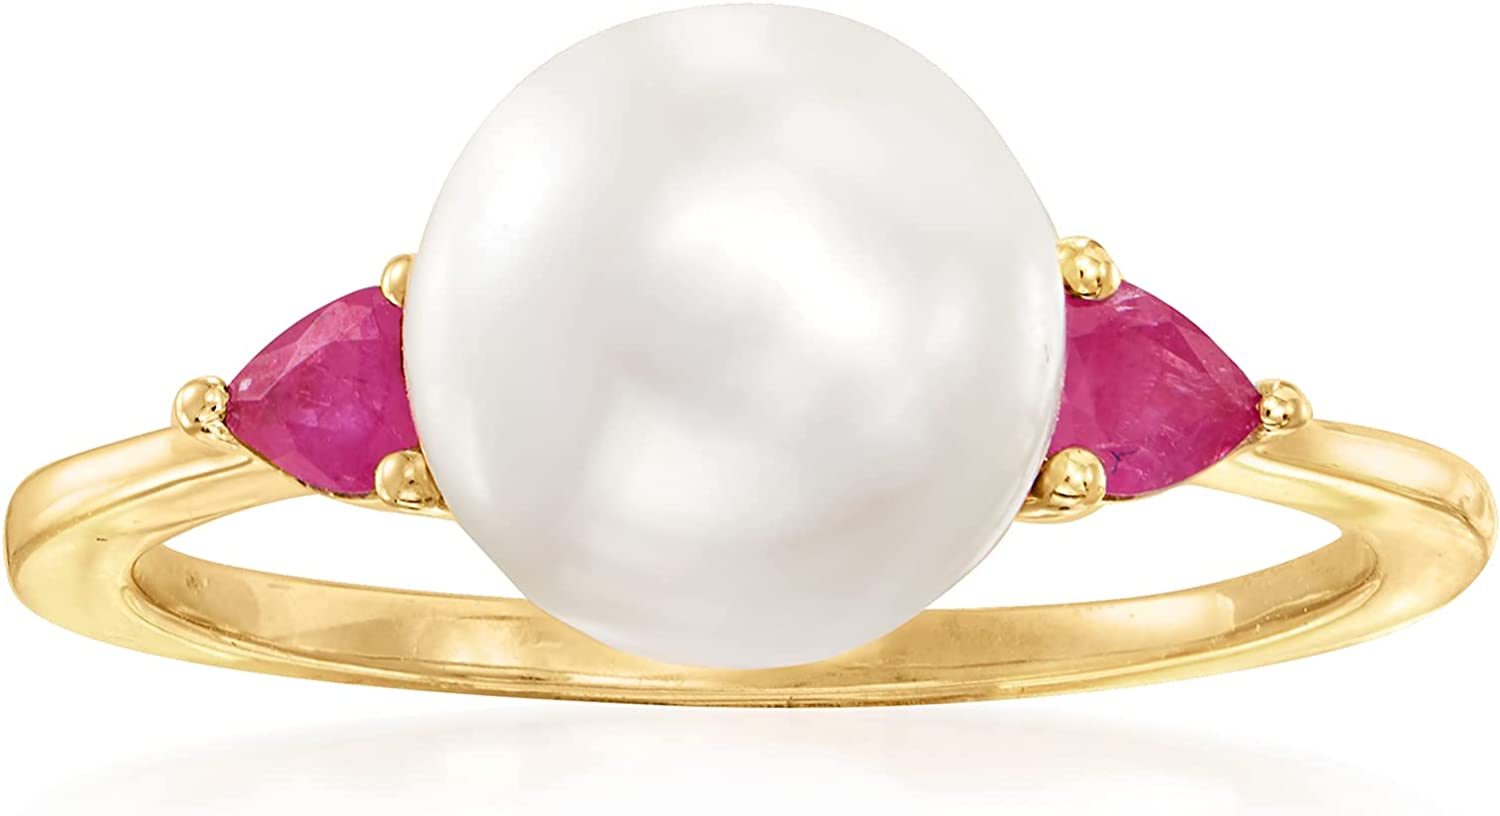 Ross-Simons 8mm Cultured Pearl and .20 ct. t.w. Ruby Ring in 14kt Yellow Gold